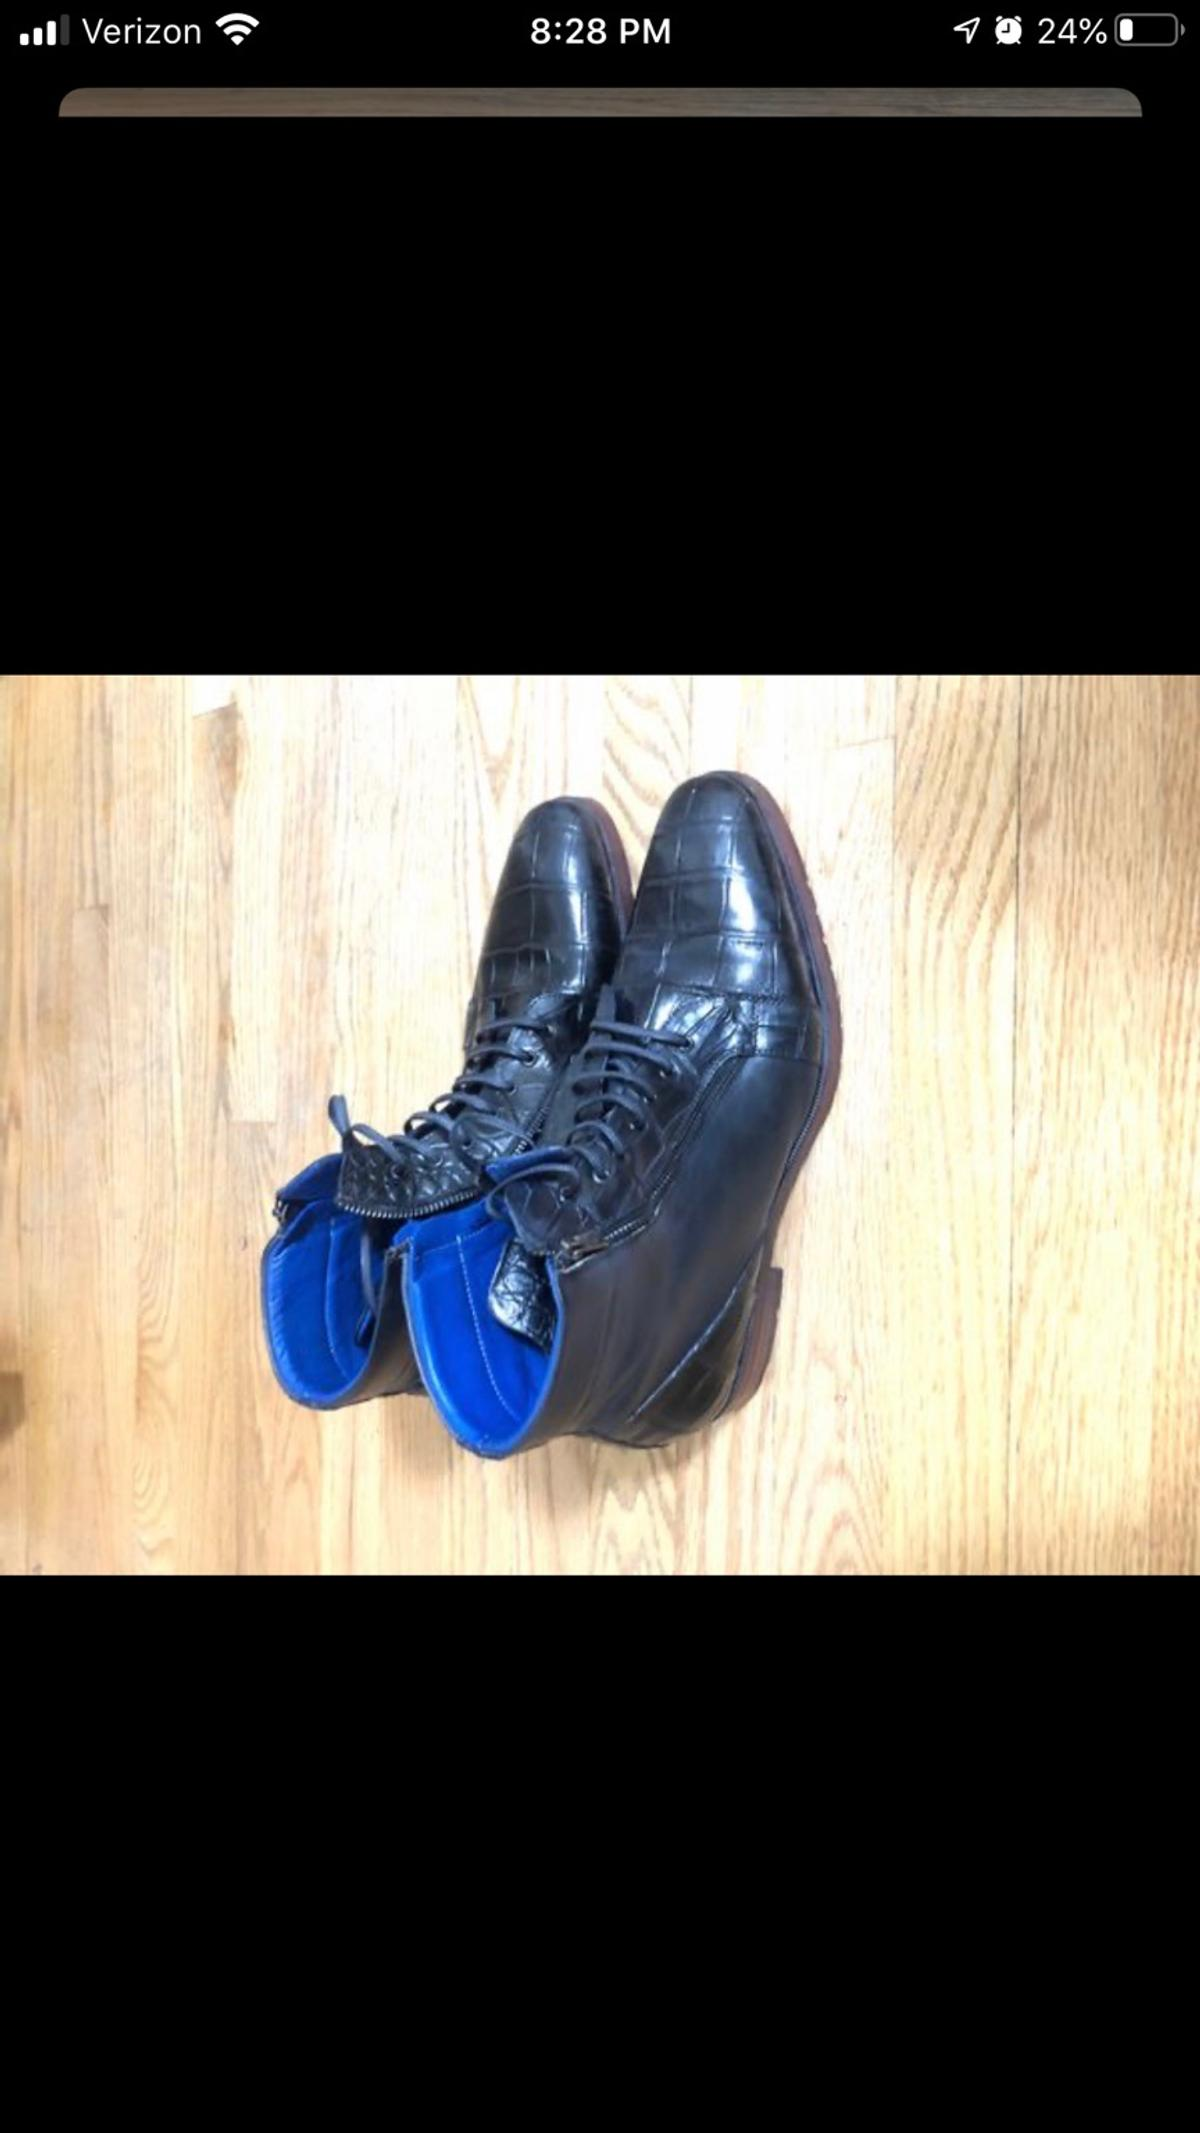 Nice quality boots that will last a life time. Size 13.